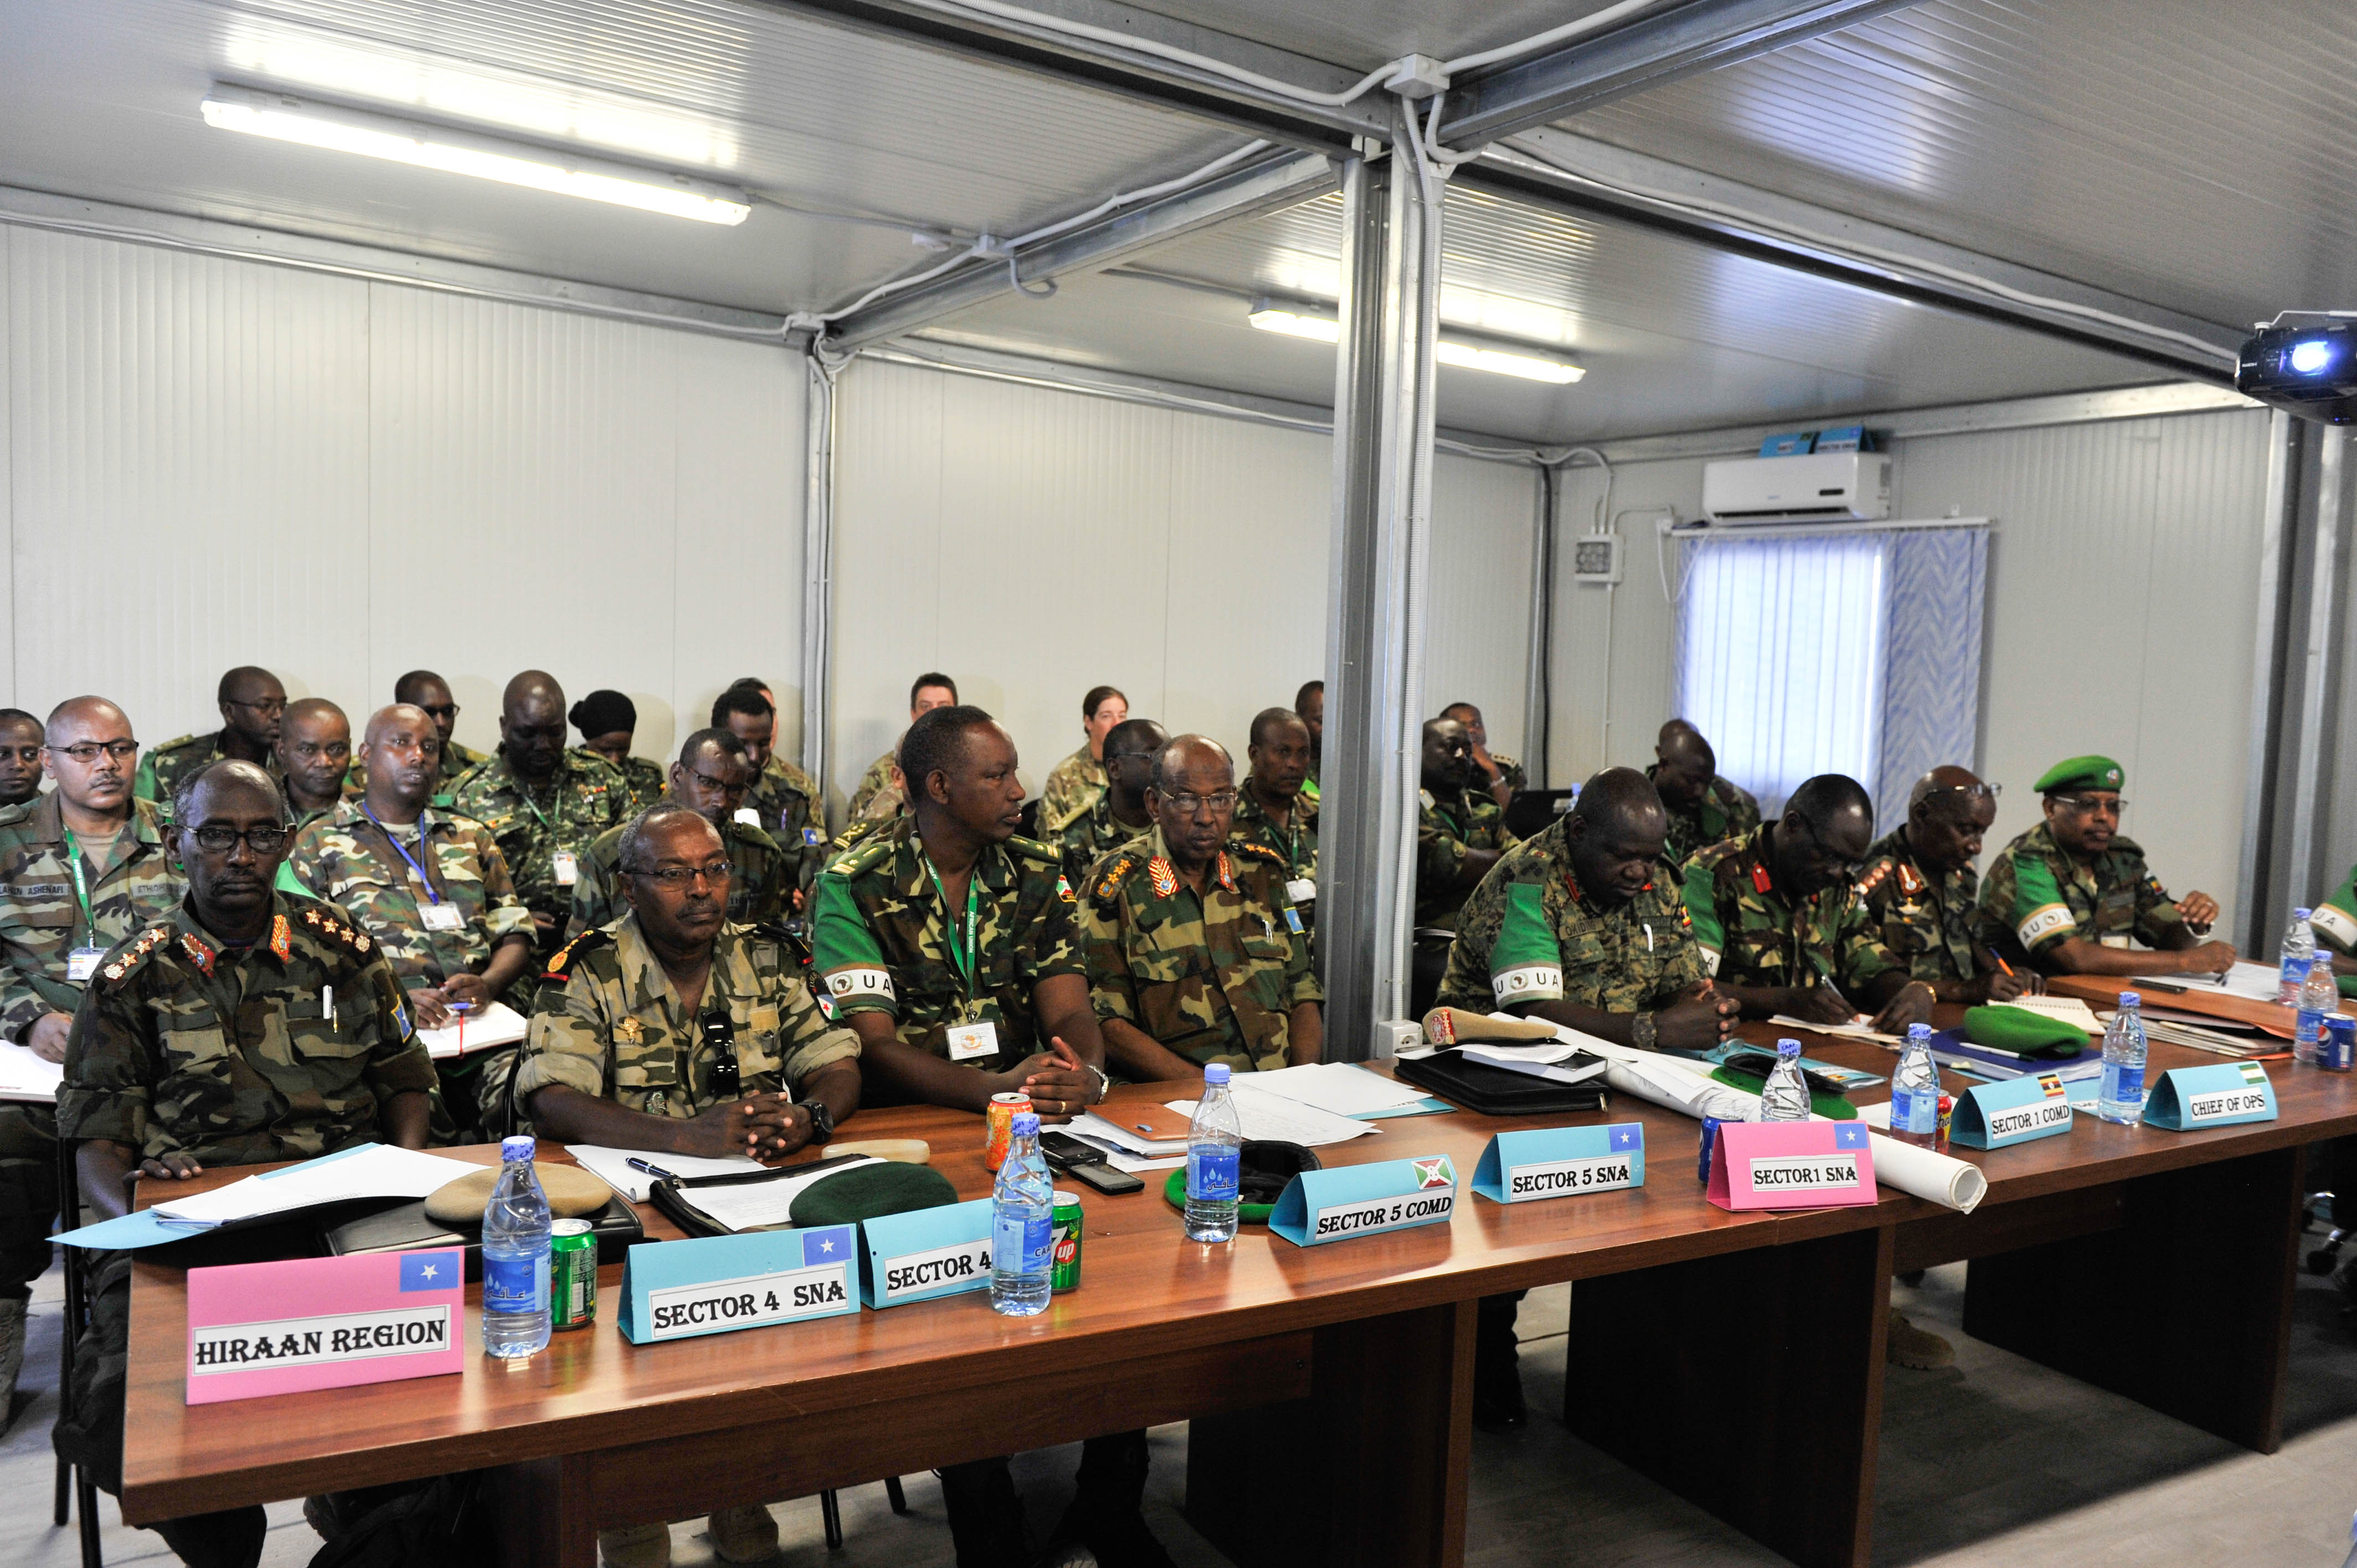 Senior officers from the Somalia National Army (SNA), and the African Union Mission in Somalia (AMISOM), attend a joint sector commanders' conference in Mogadishu on August 4, 2016. AMISOM Photo / Omar Abdisalan